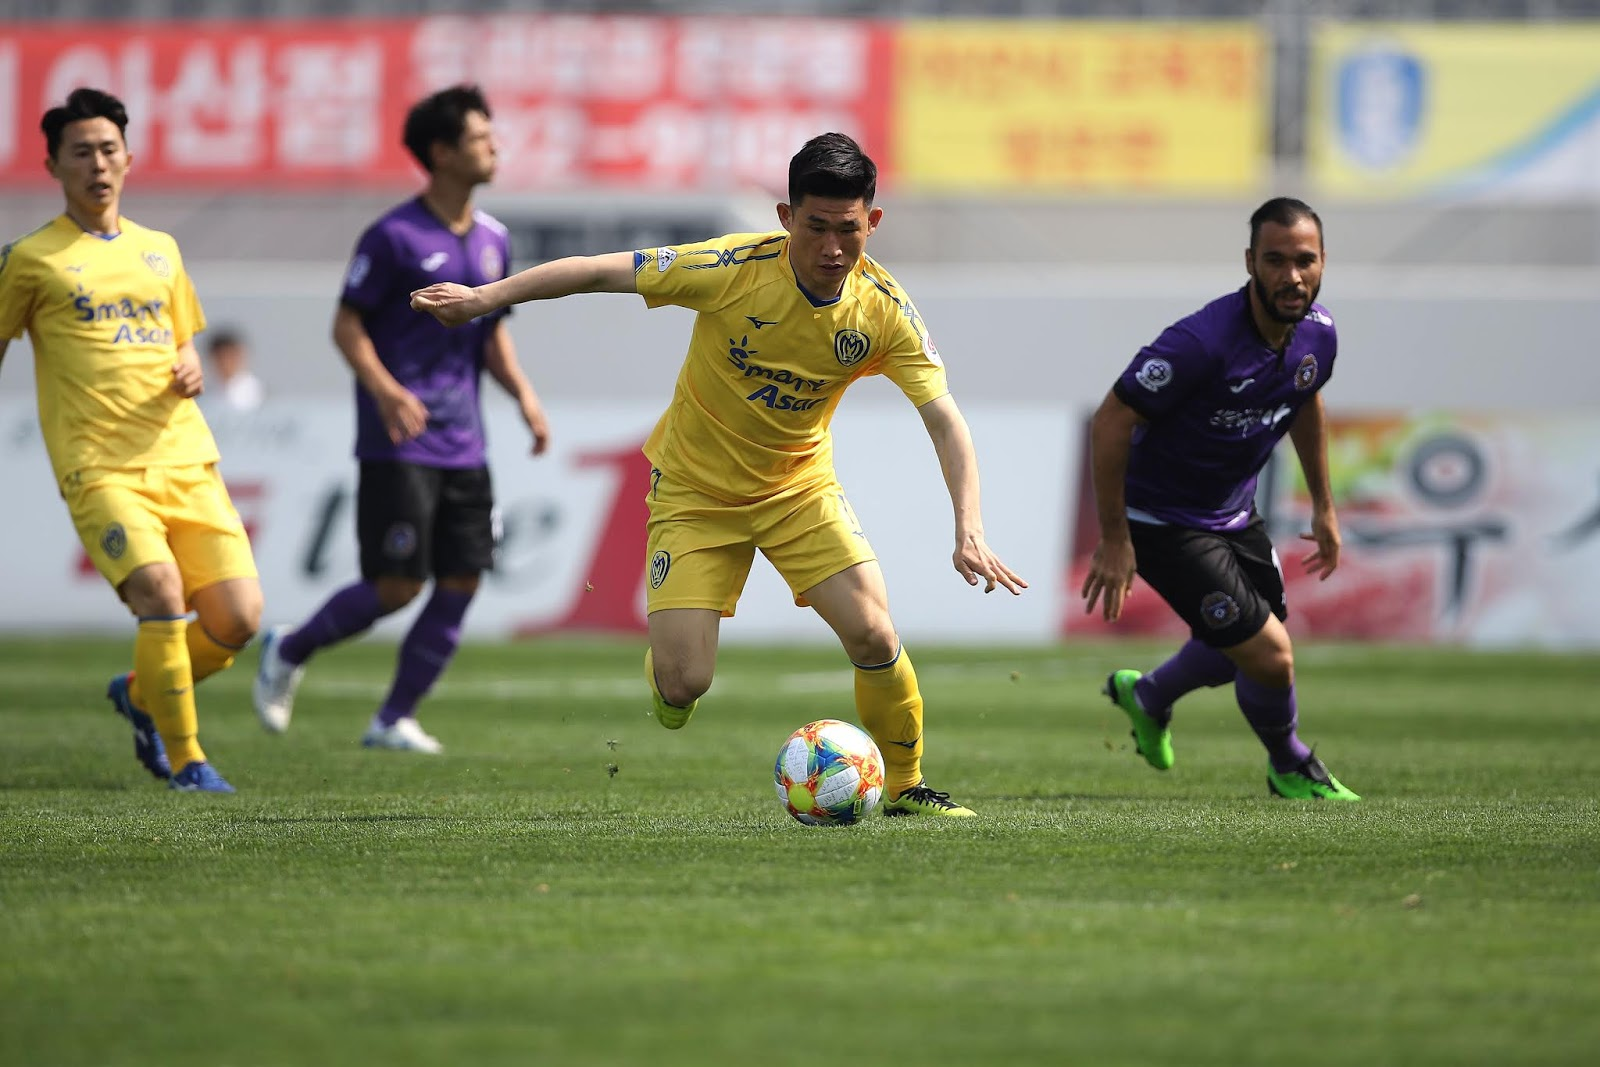 Preview: Asan Mugunghwa vs Suwon FC K League 2 Round 8